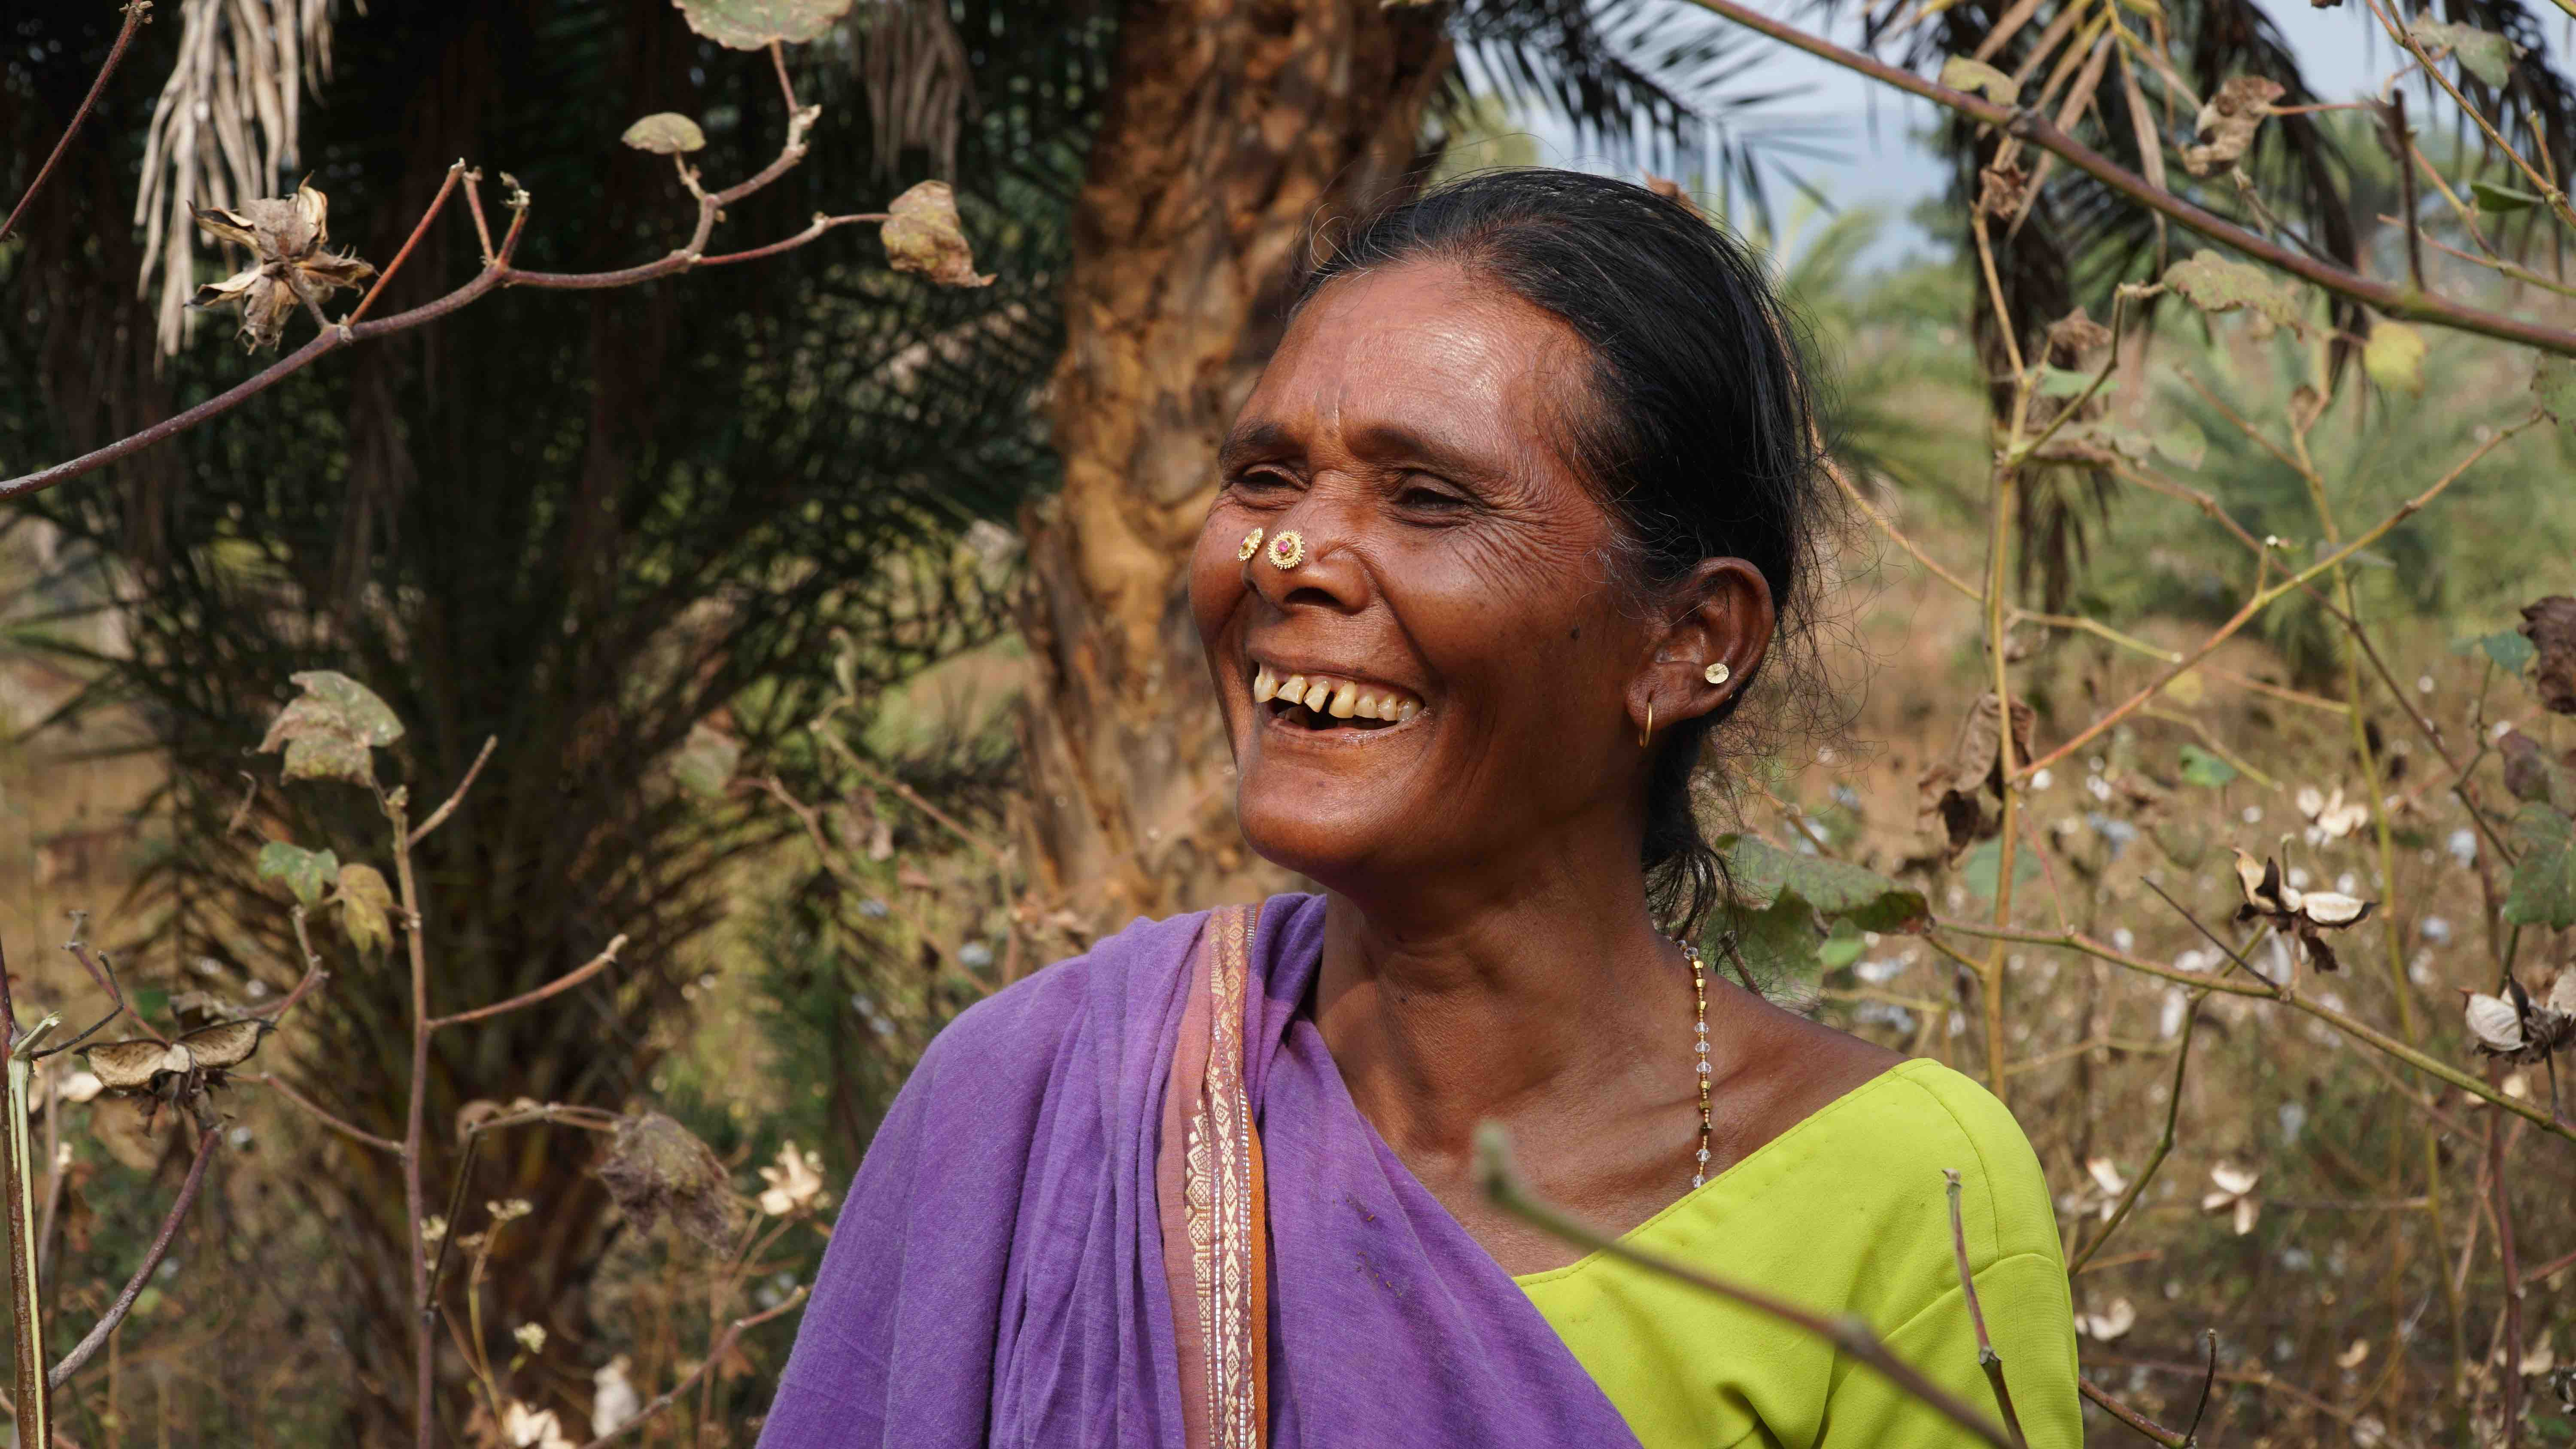 Adivasi economics may be the only hope for India's future – Felix Padel